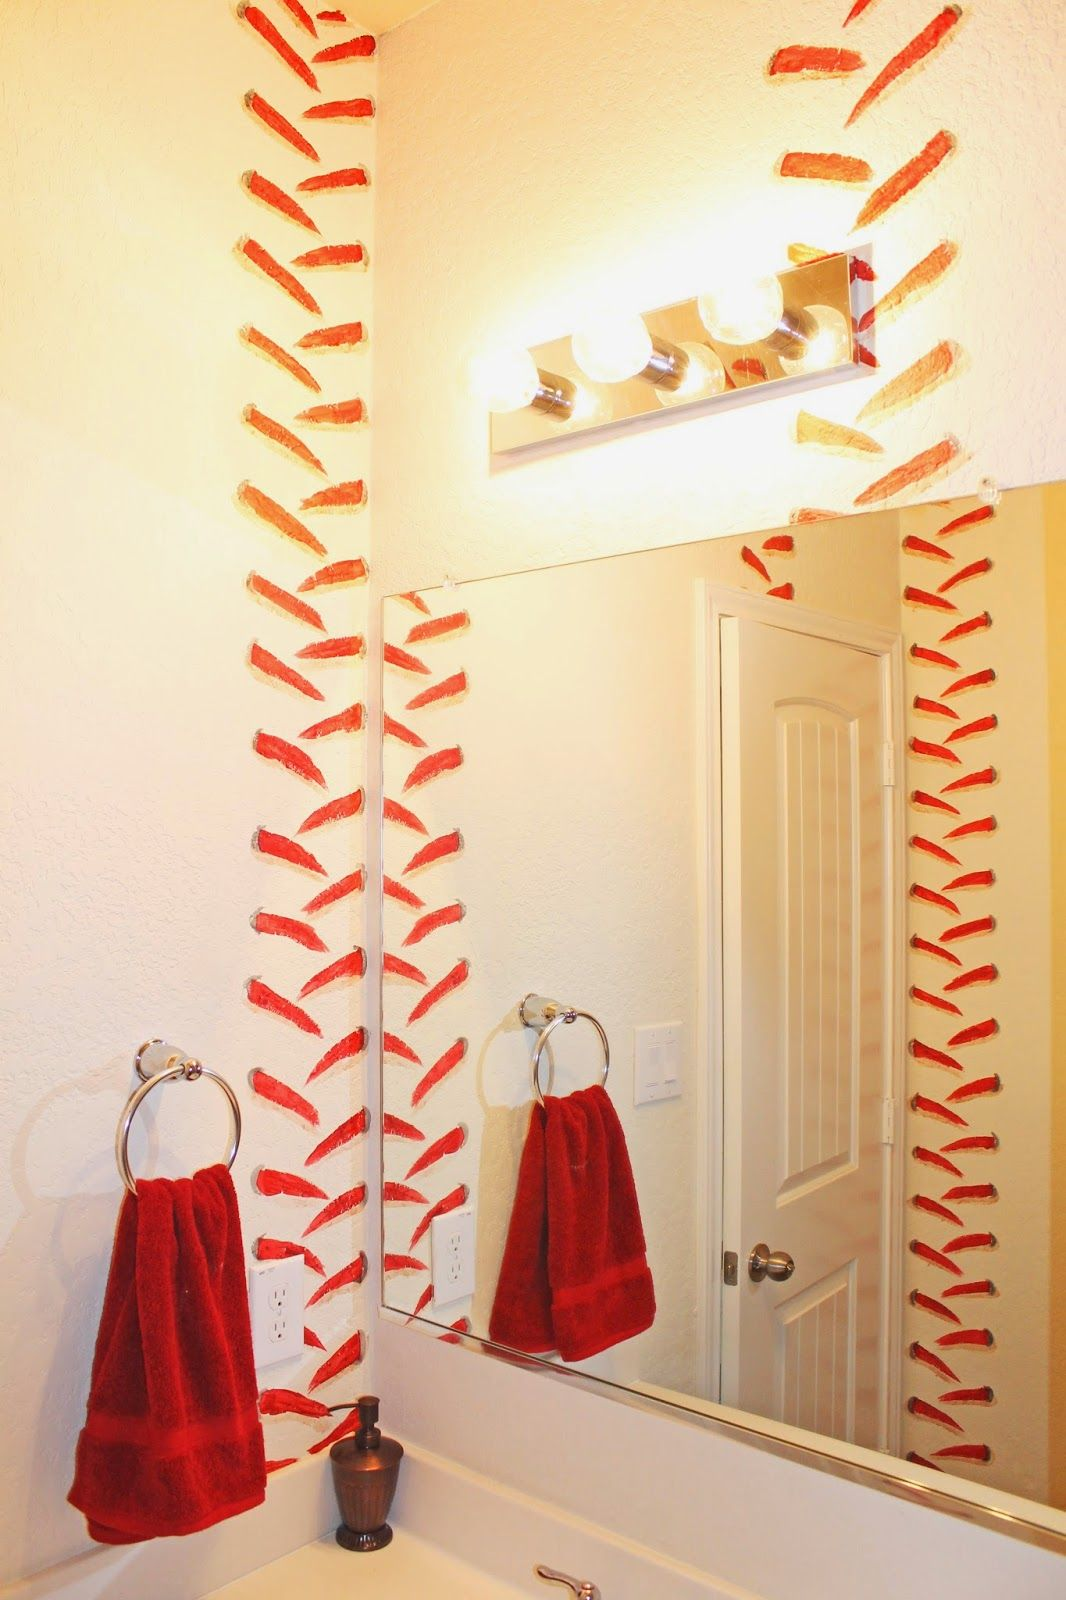 boys baseball themed bathroom. stitching painted in stripes on